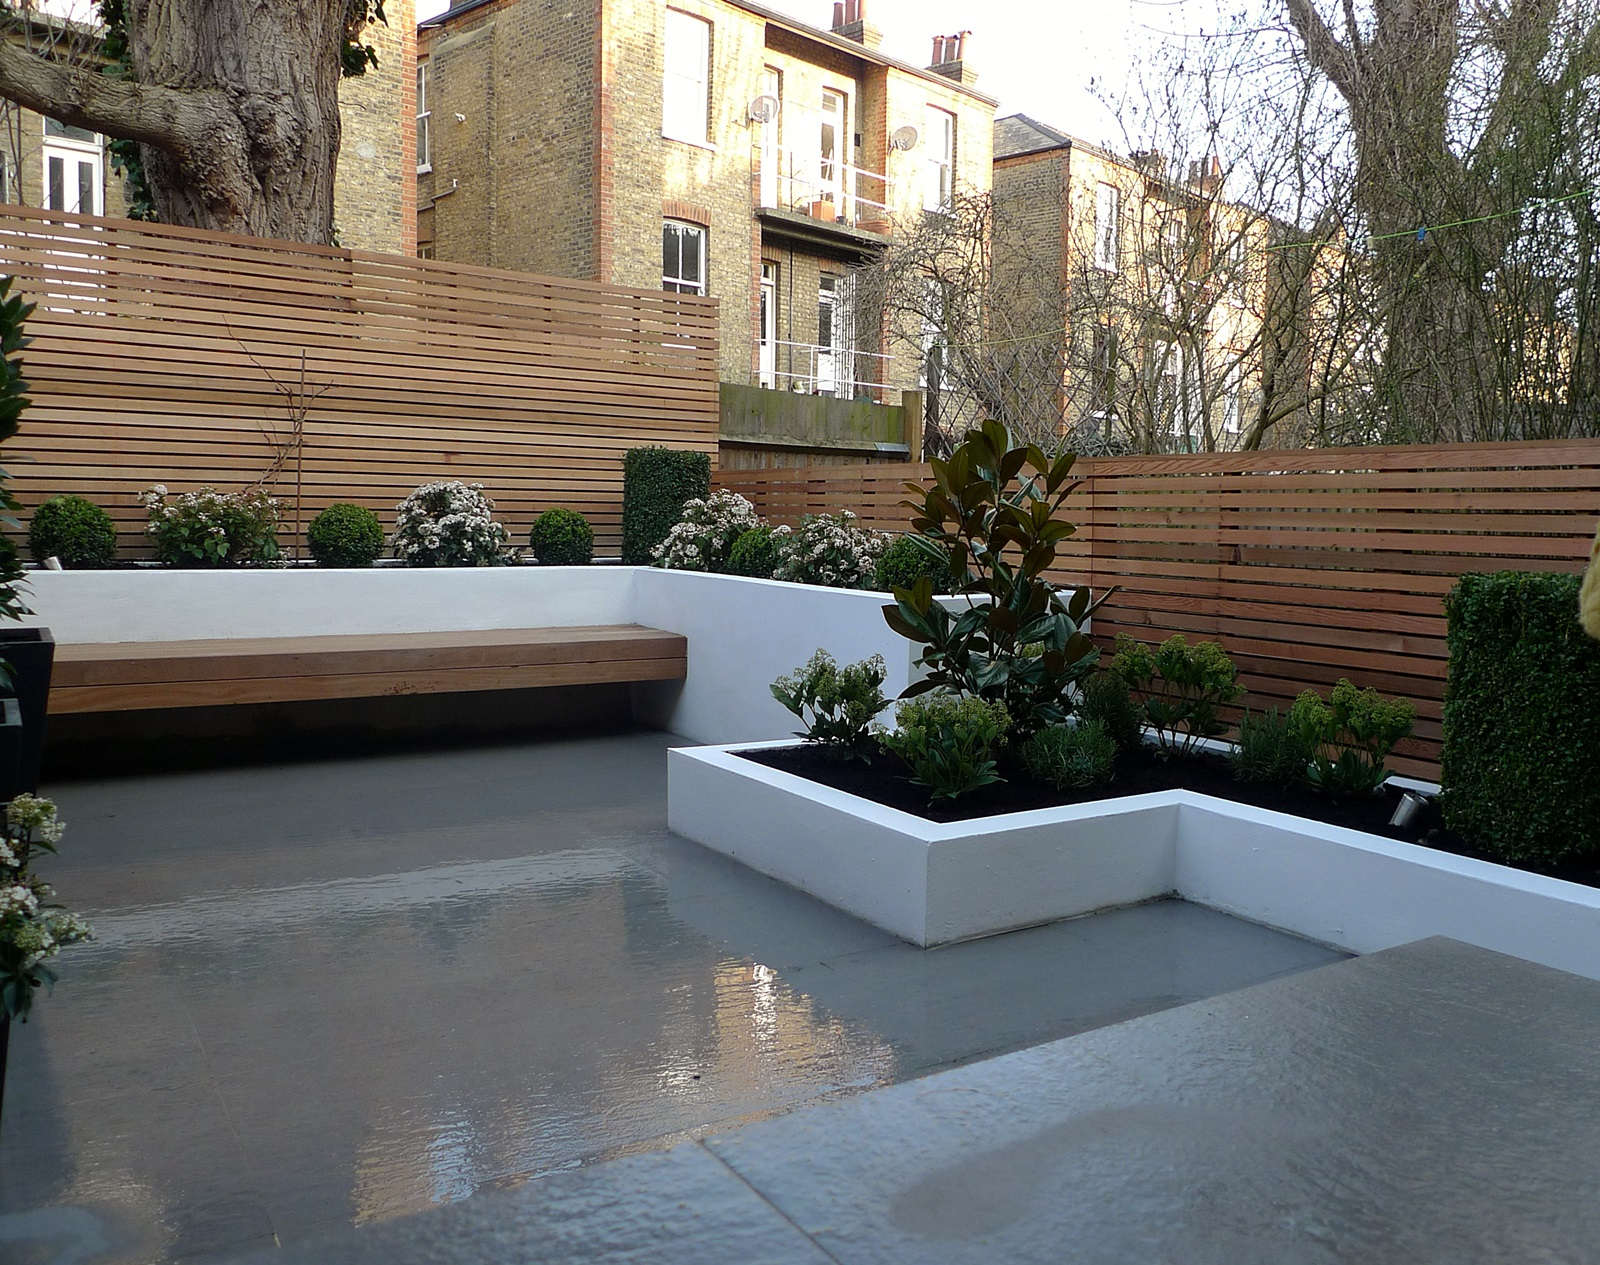 Garden design designer clapham balham battersea small low maintenance modern garden (9)